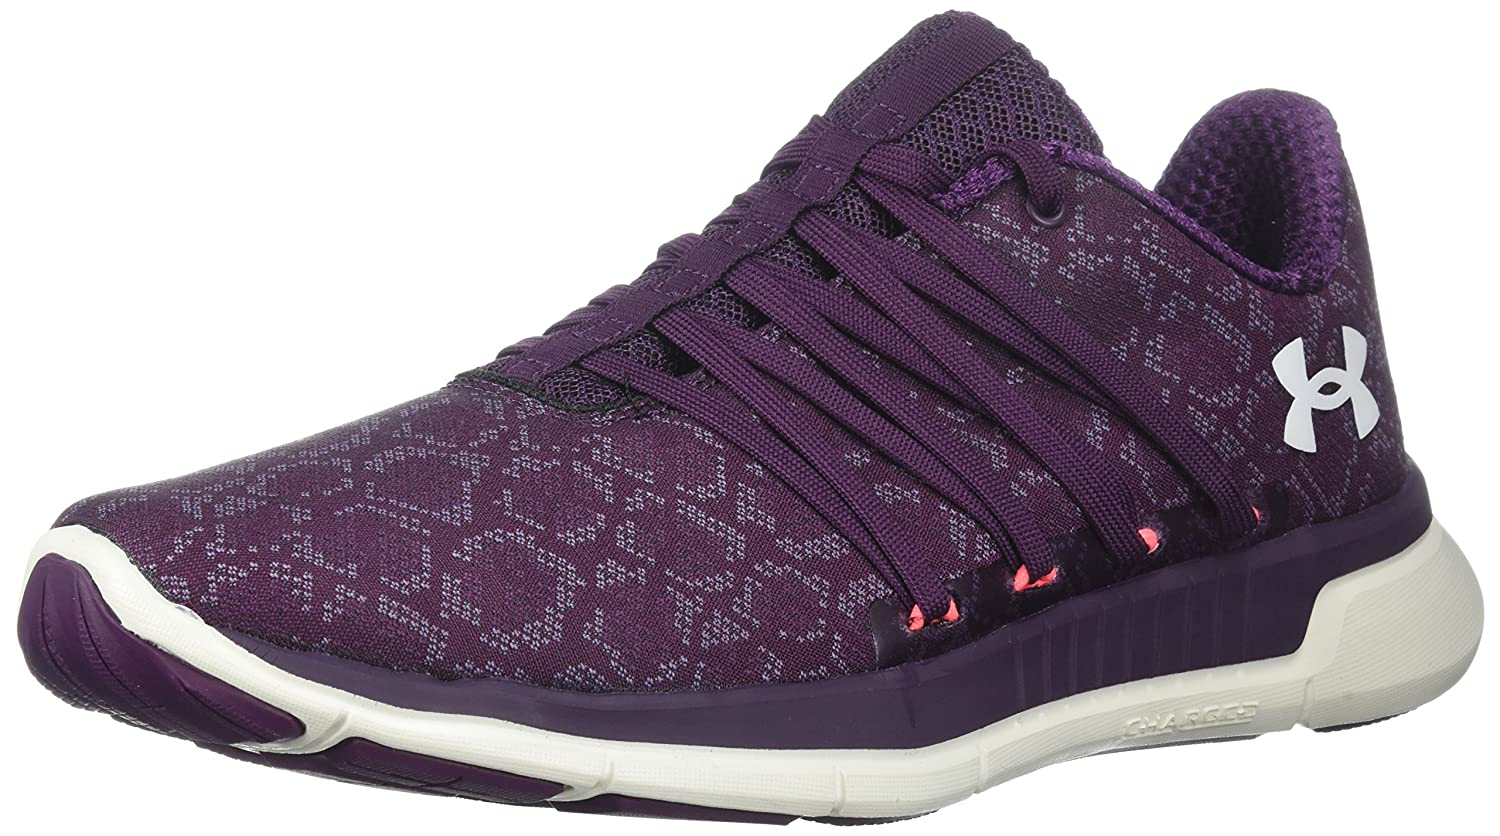 Under Armour Women's Charged Transit Running Shoe B0725R4HSH 9 M US|Merlot (501)/Ivory